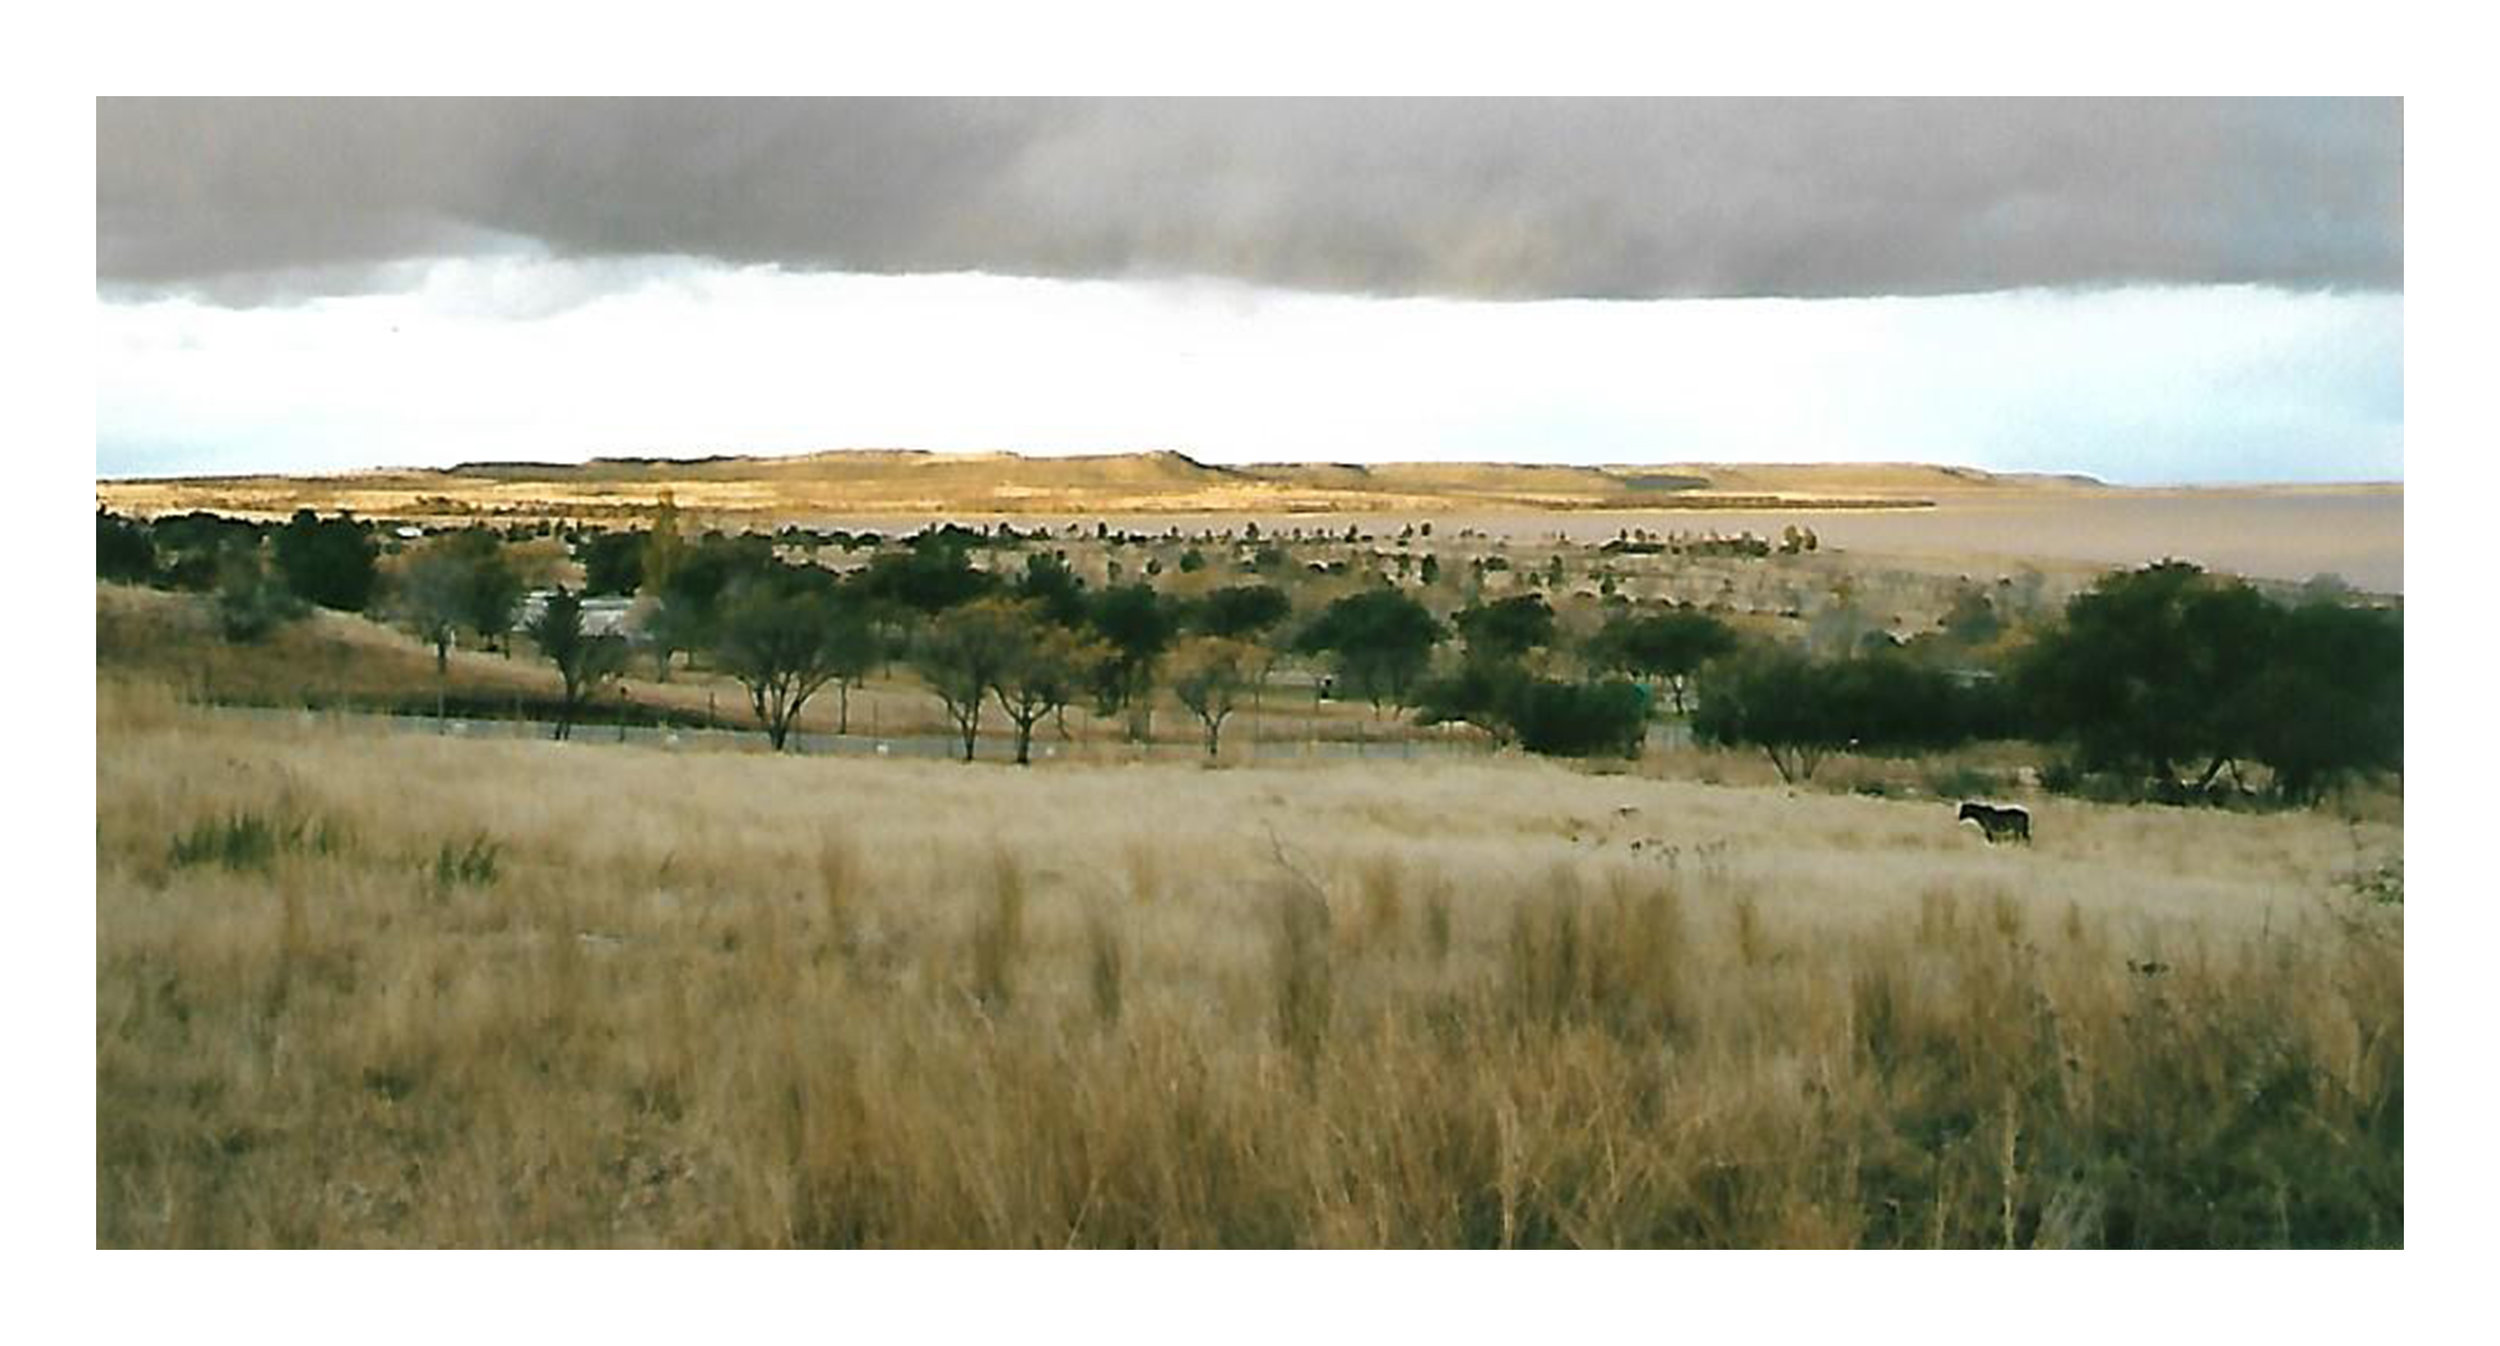 A view of the veld at Willem Pretorius Nature Reserve in June 1996, during winter in South Africa. Photo by Cynthia Havstad.